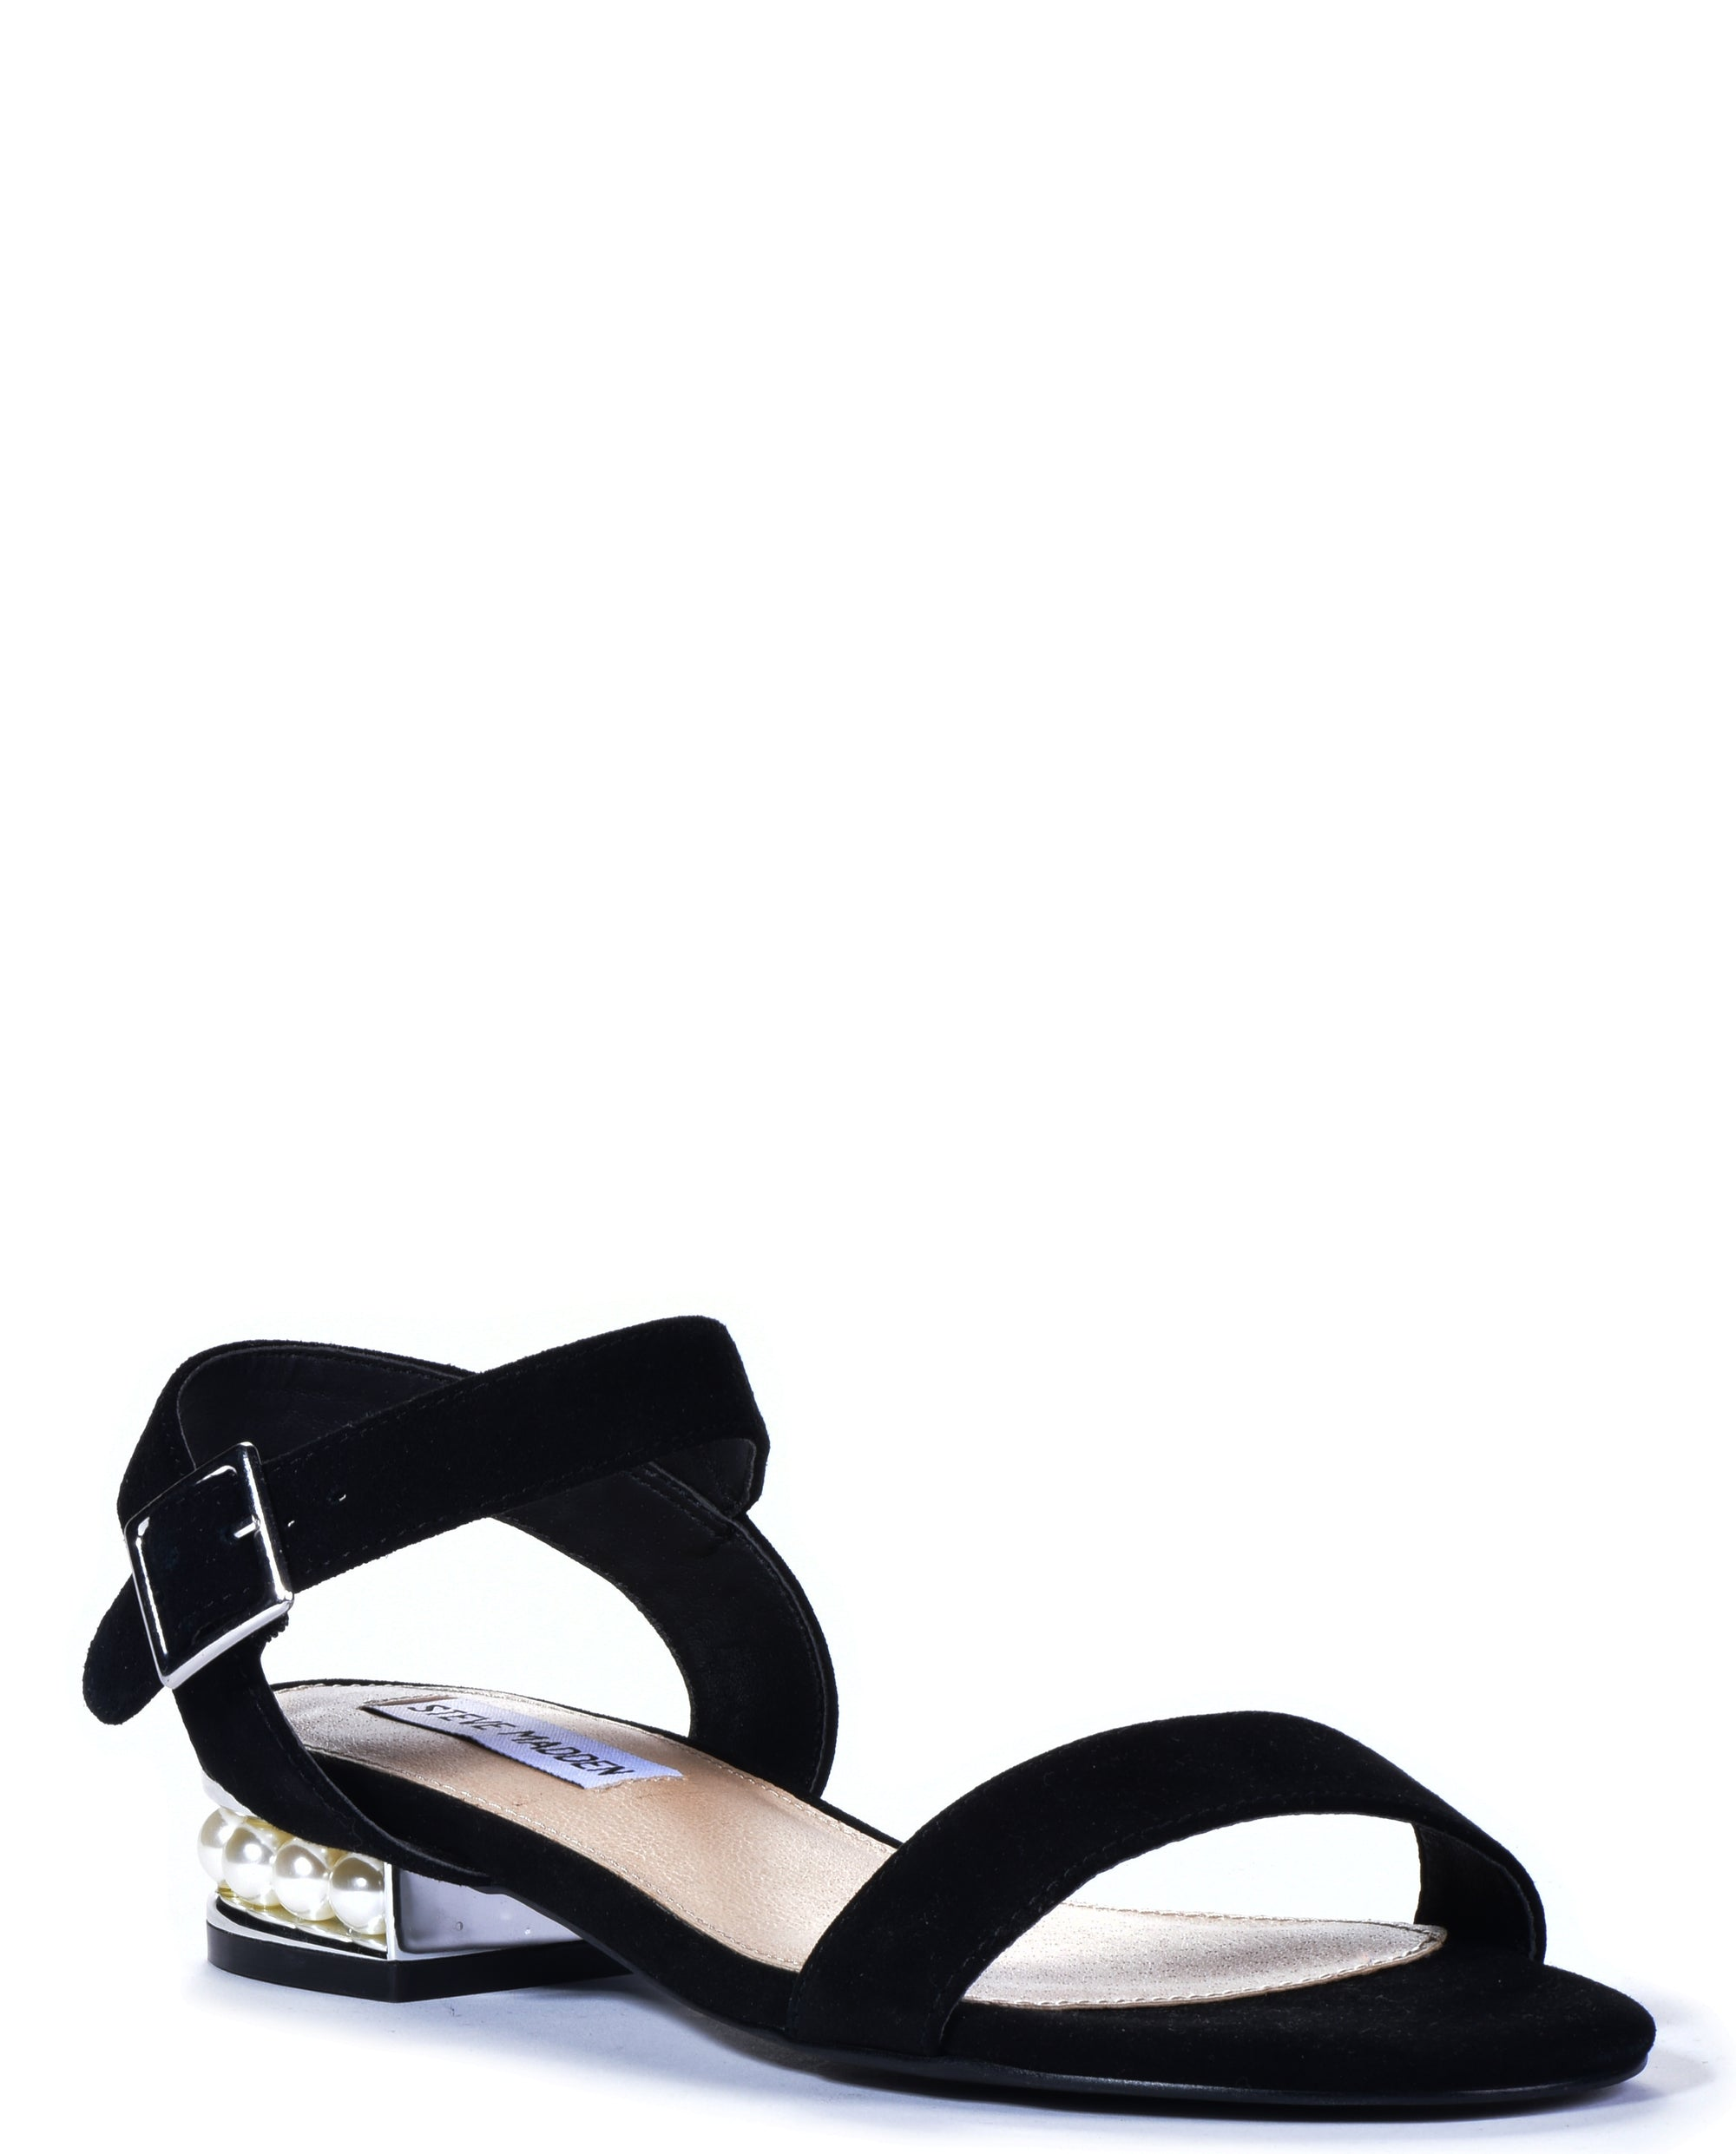 6c62a5bcdae Steve Madden Cashmere Pearl Sandals - Fashion You Up